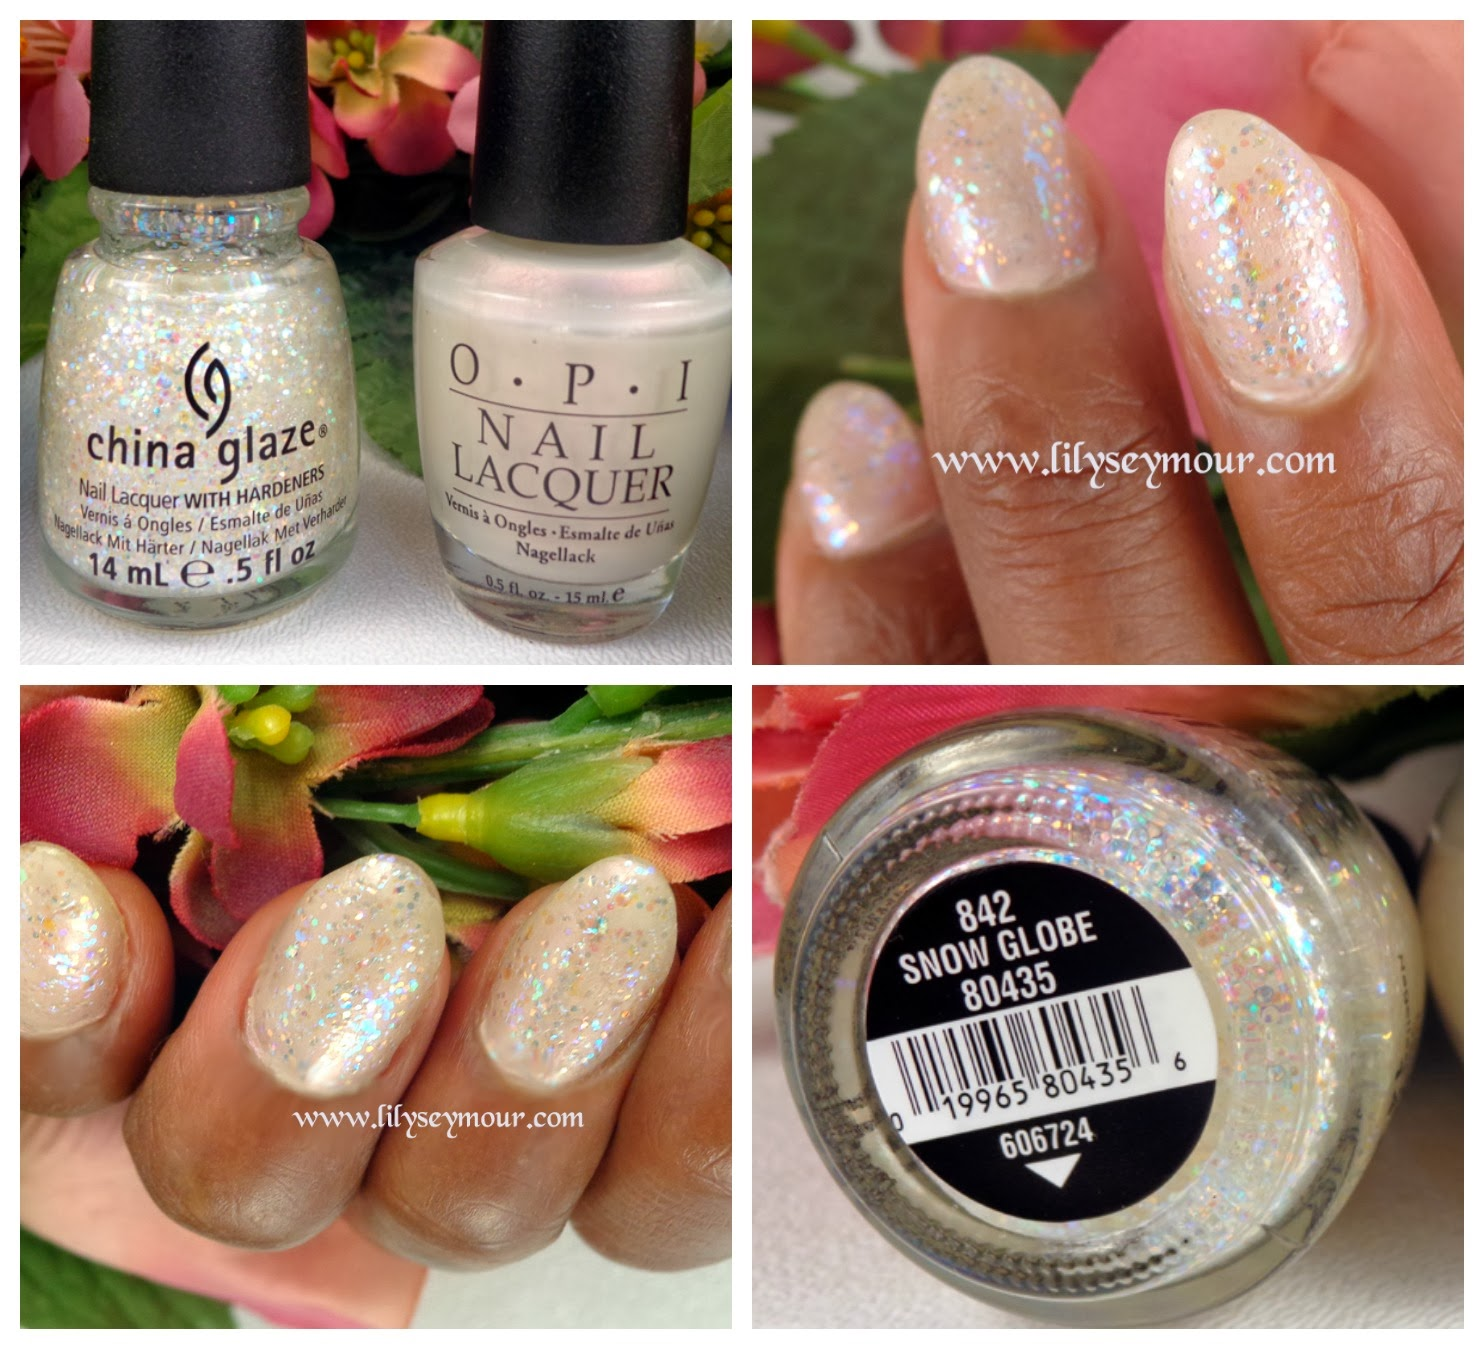 OPI Papua Pink Pearl and China Glaze Snow Globe